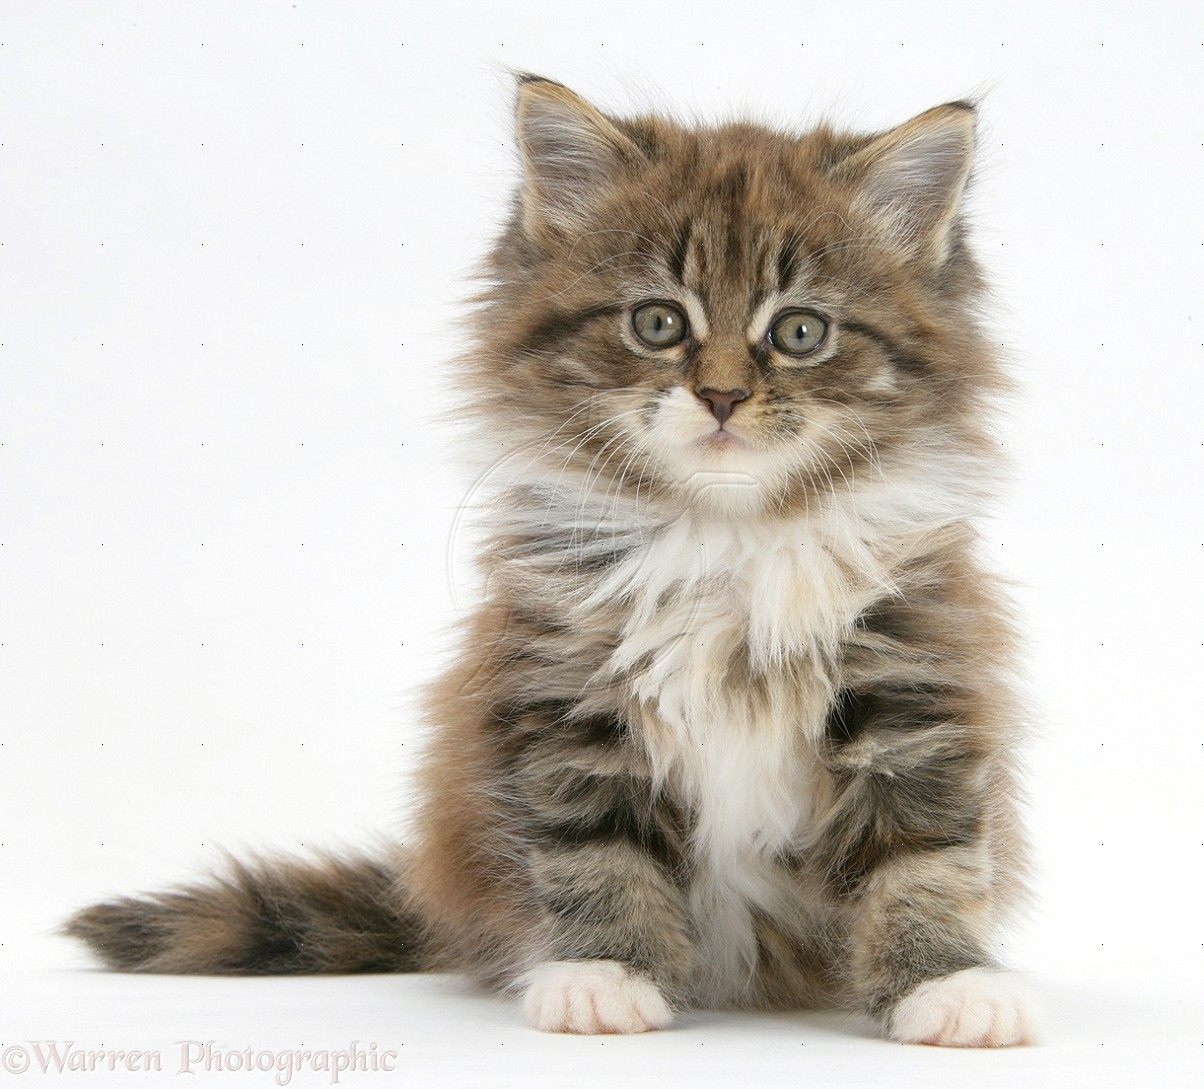 51 Very Beautiful Main Coon Kitten Pictures And Photos Tabby Maine Coon Kitten